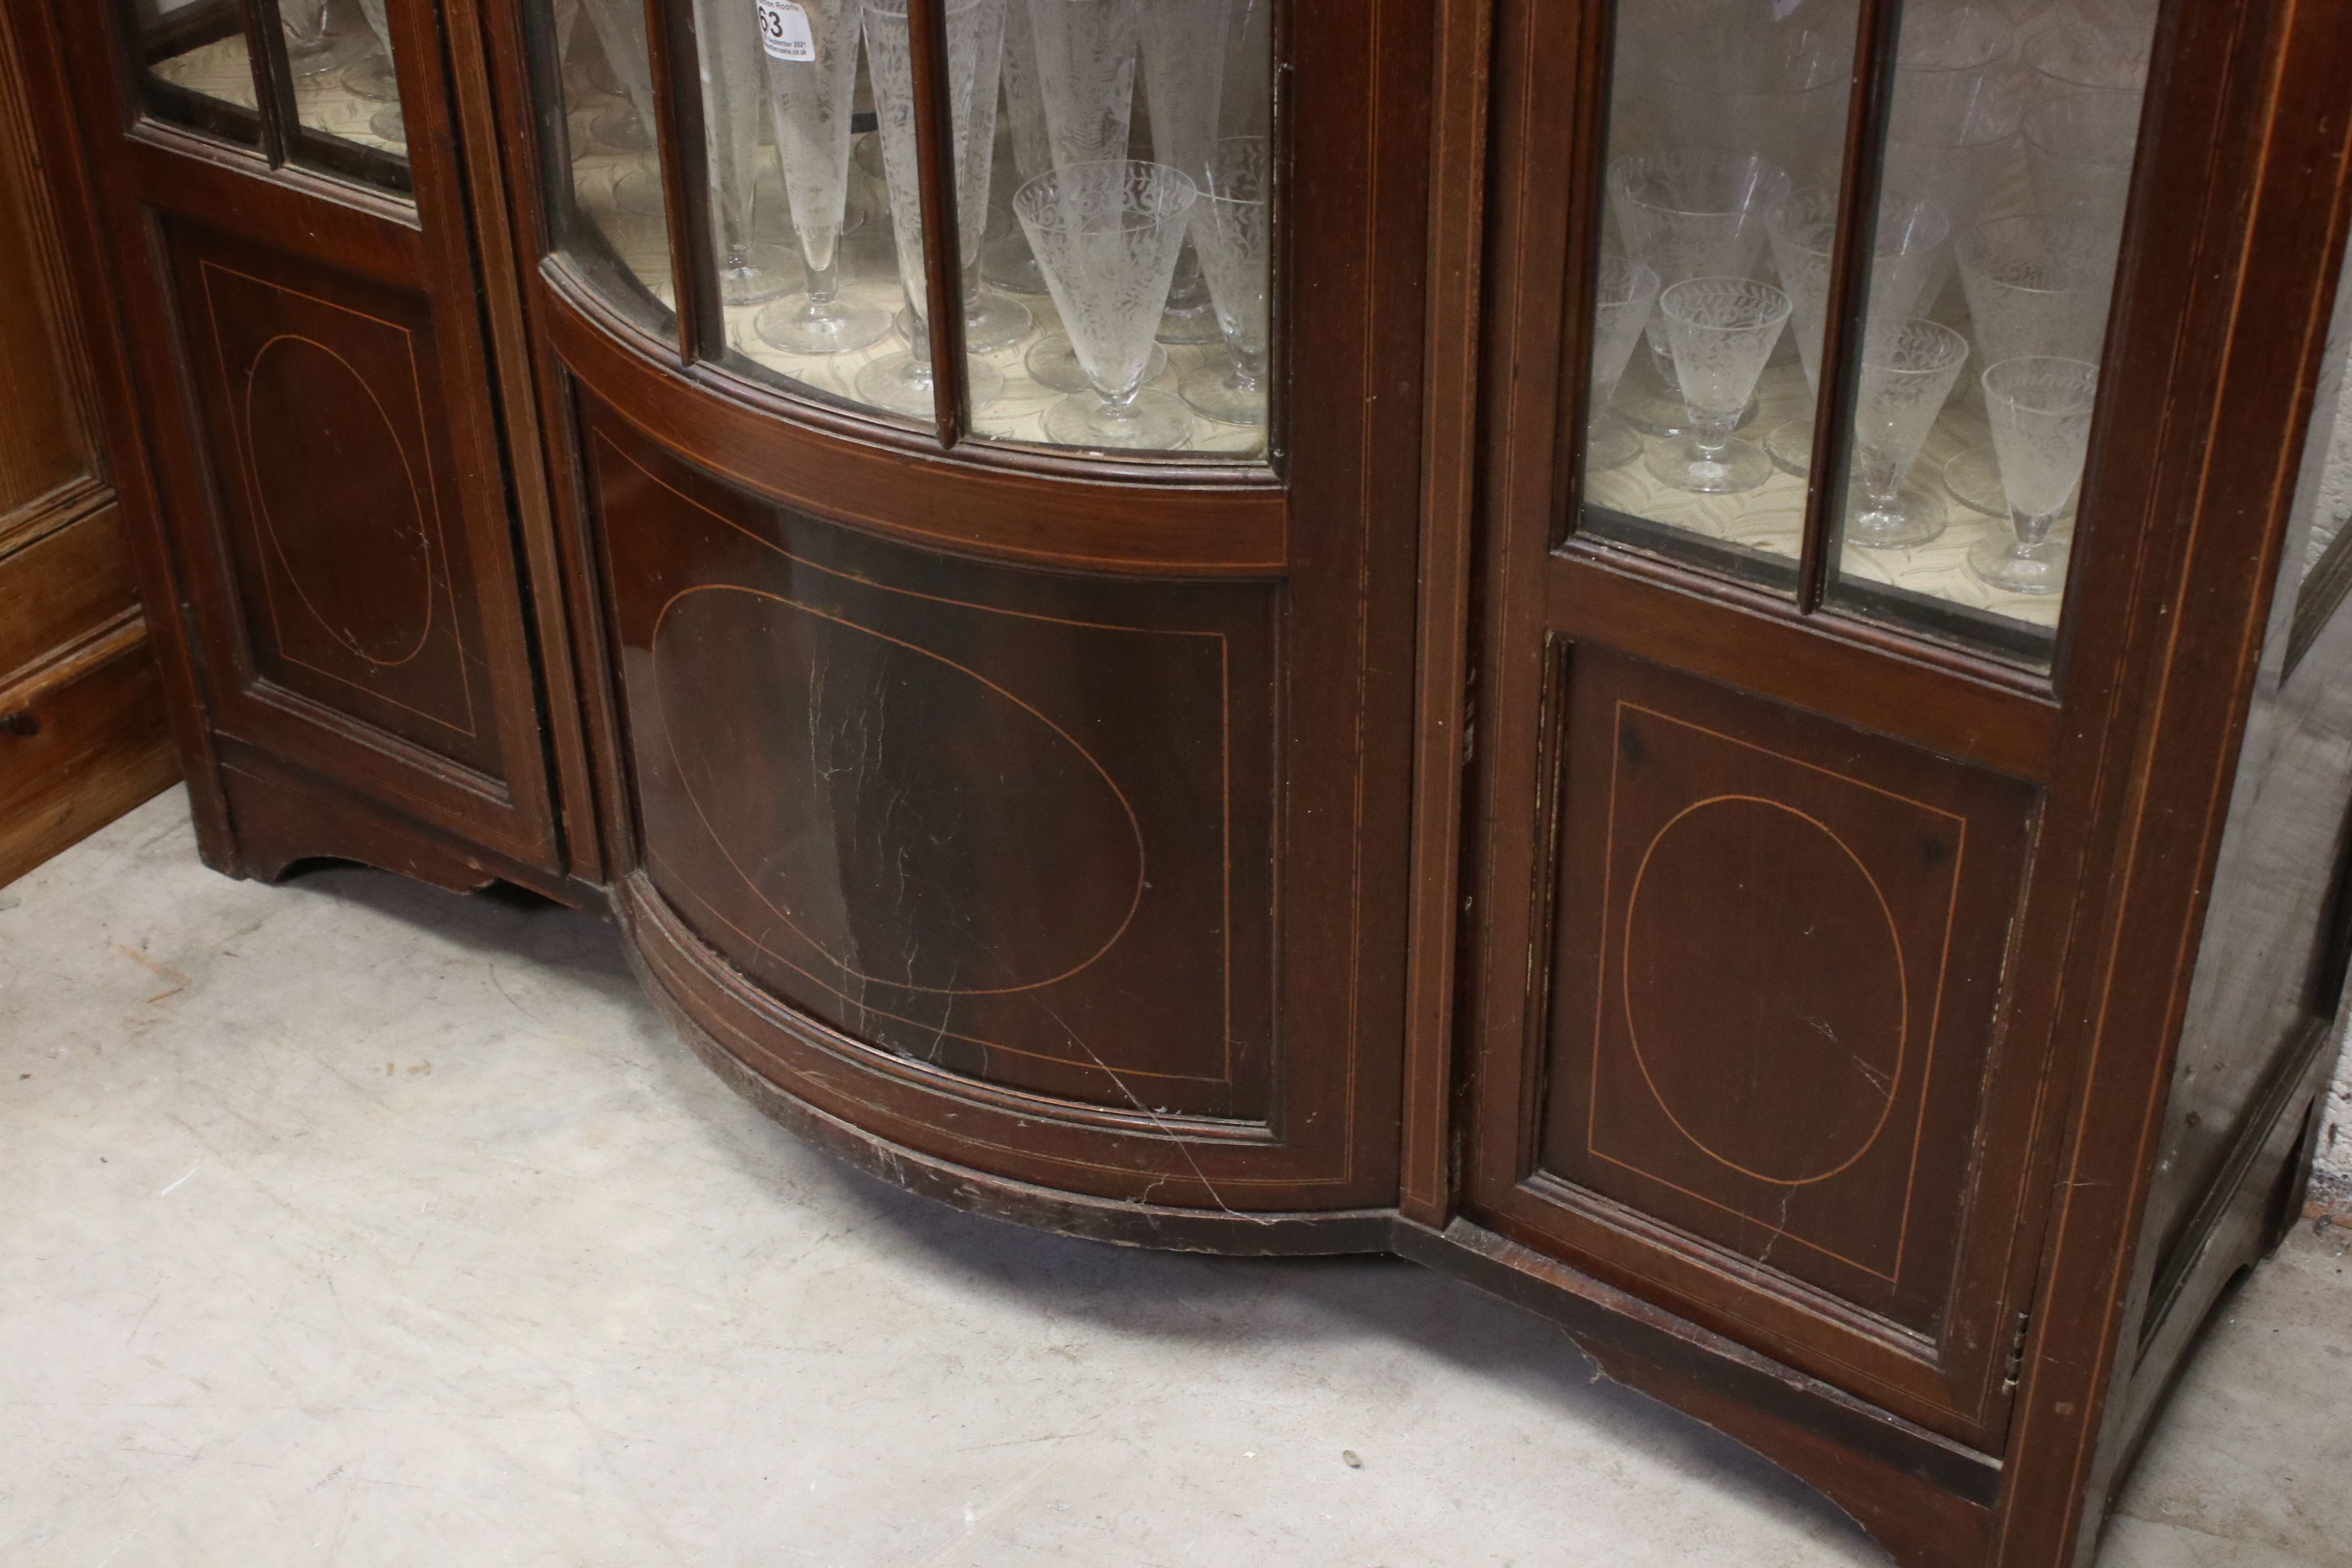 Edwardian Mahogany Inlaid Display Cabinet, 114cms wide x 153cms high - Image 4 of 5